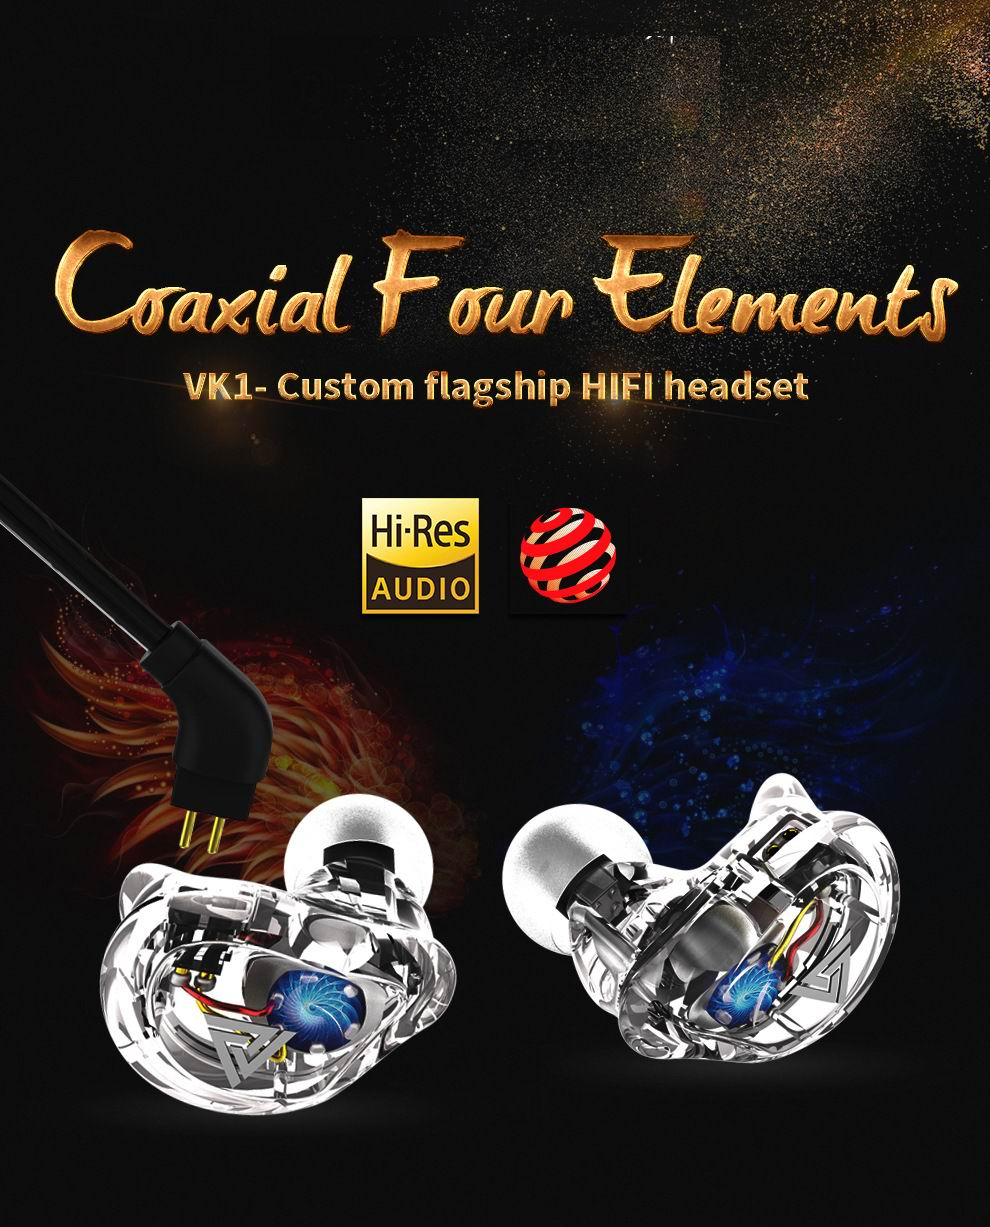 PIZEN VK1 Hi-Res In Ear Earphone HIFI DJ Monito Running Sport Earphones Earplug Headset Earbud ZS10 ZS6 fone de ouvido audifonos in stock zs5 2dd 2ba hybrid in ear earphone hifi dj monito bass running sport headphone headset earbud fone de ouvid for xiomi